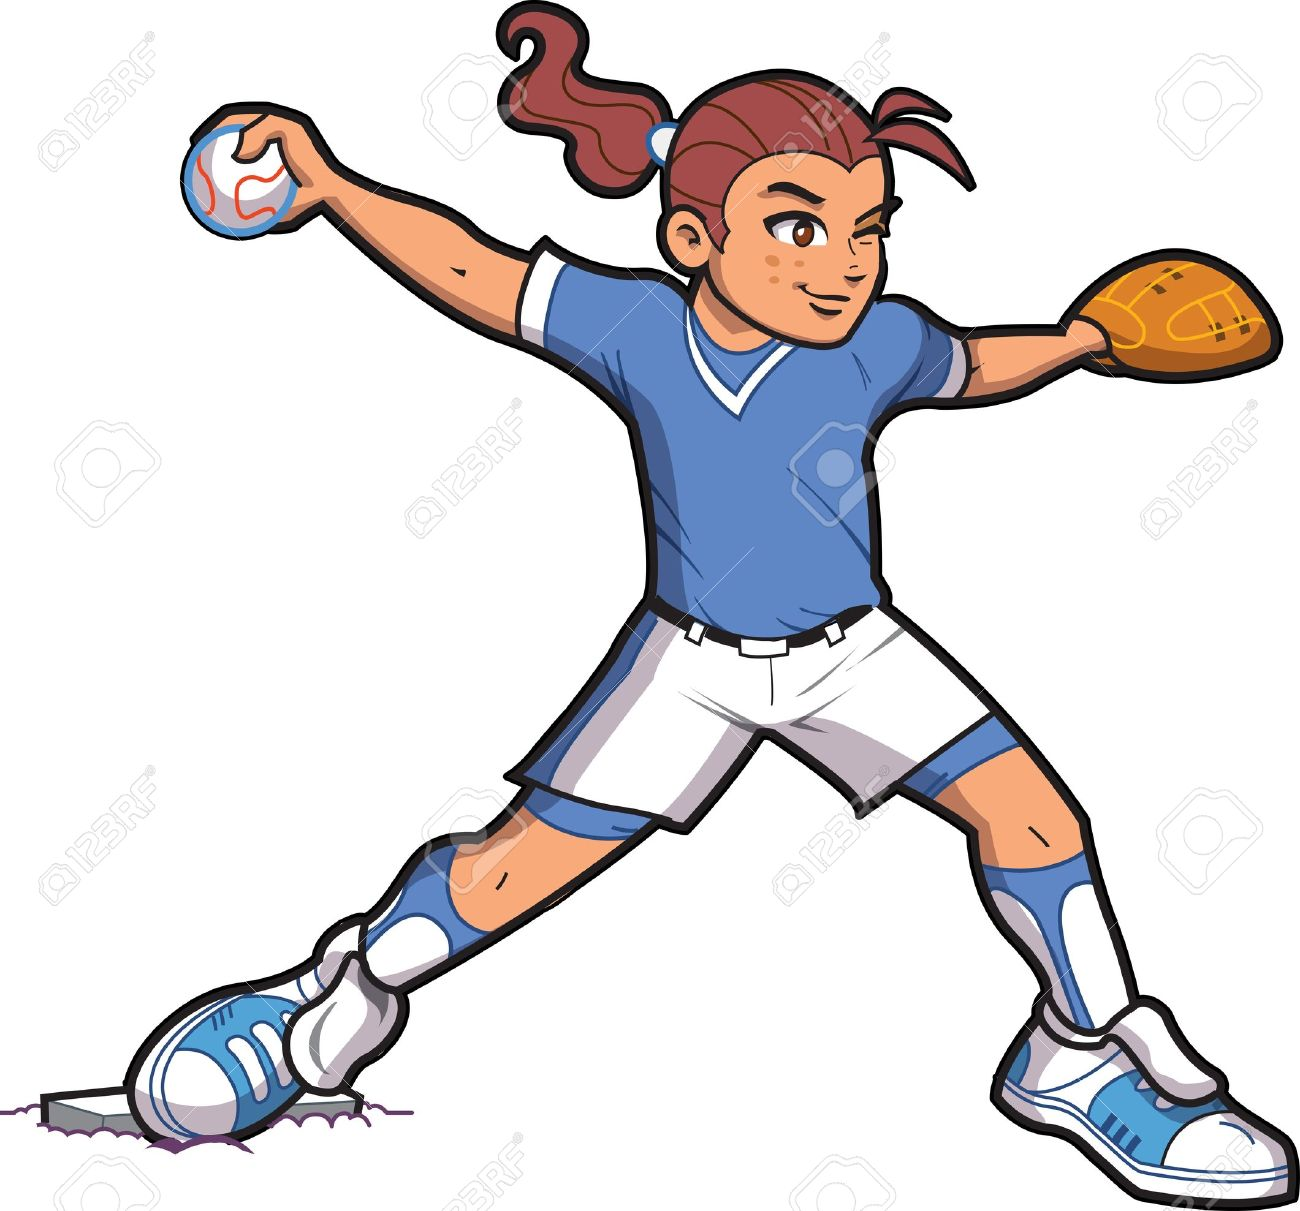 1300x1211 Girl Softball Baseball Pitcher With Ponytail And Proper Form